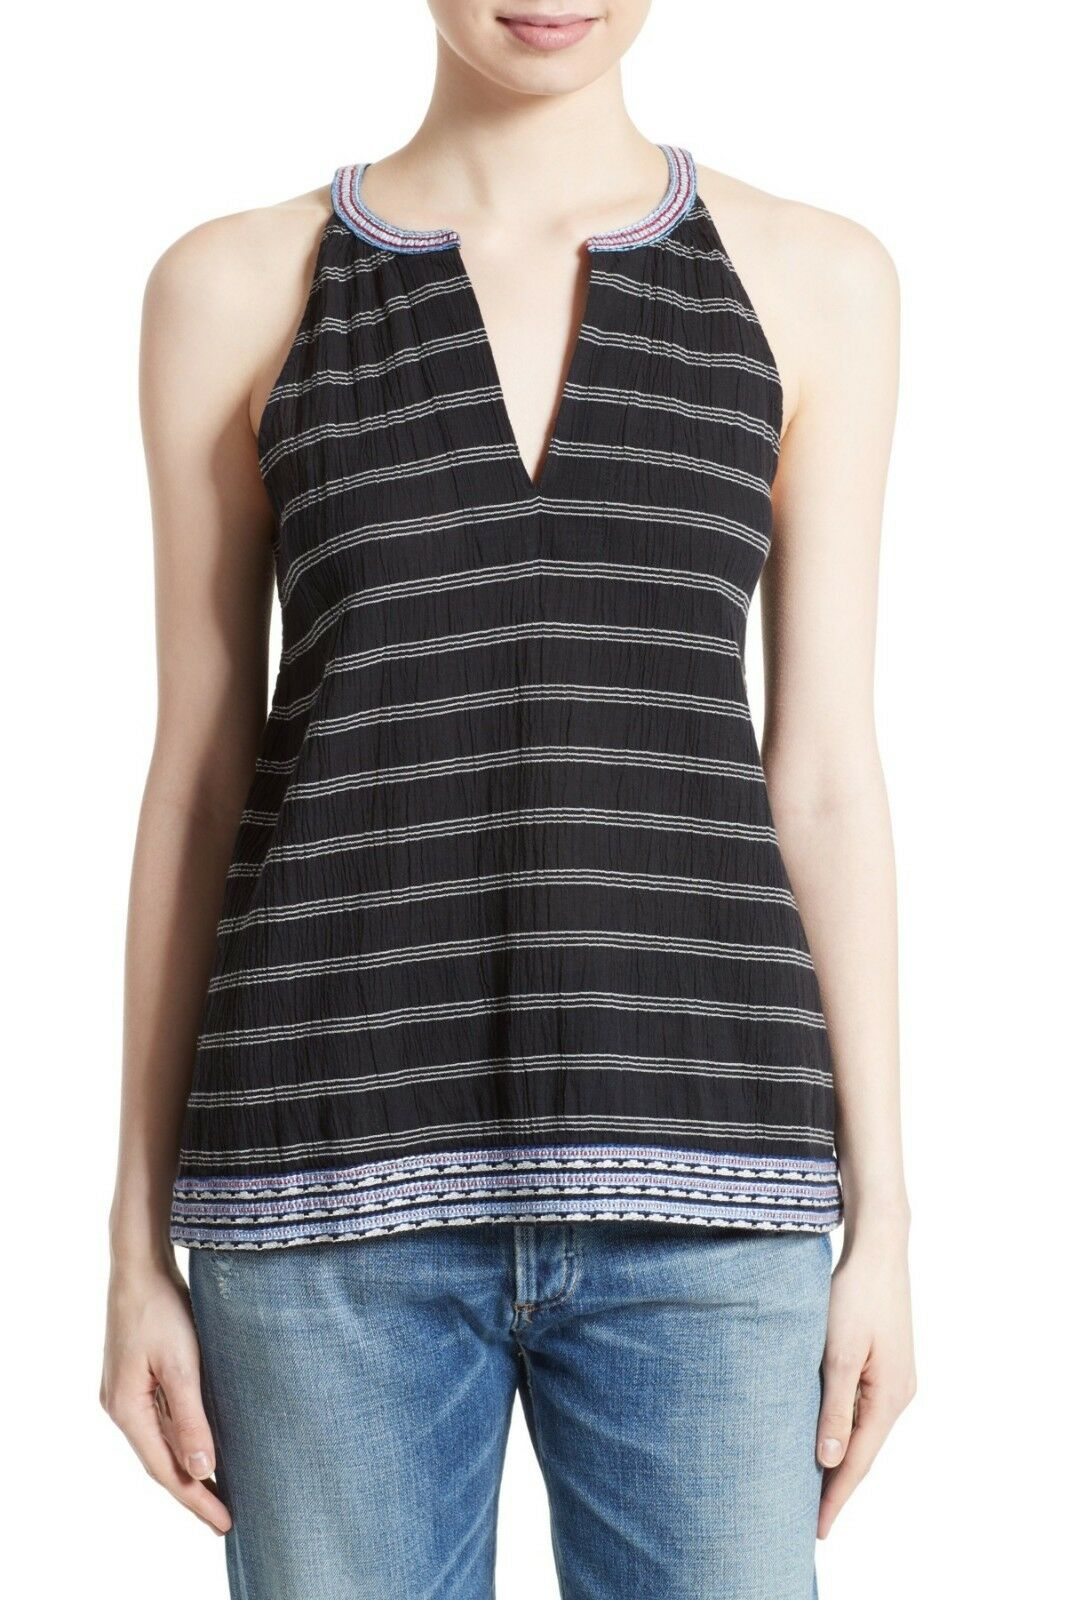 NWT- Soft Joie 'Heather' Embroiderot Sleeveless Top, Caviar Porcelain - Medium